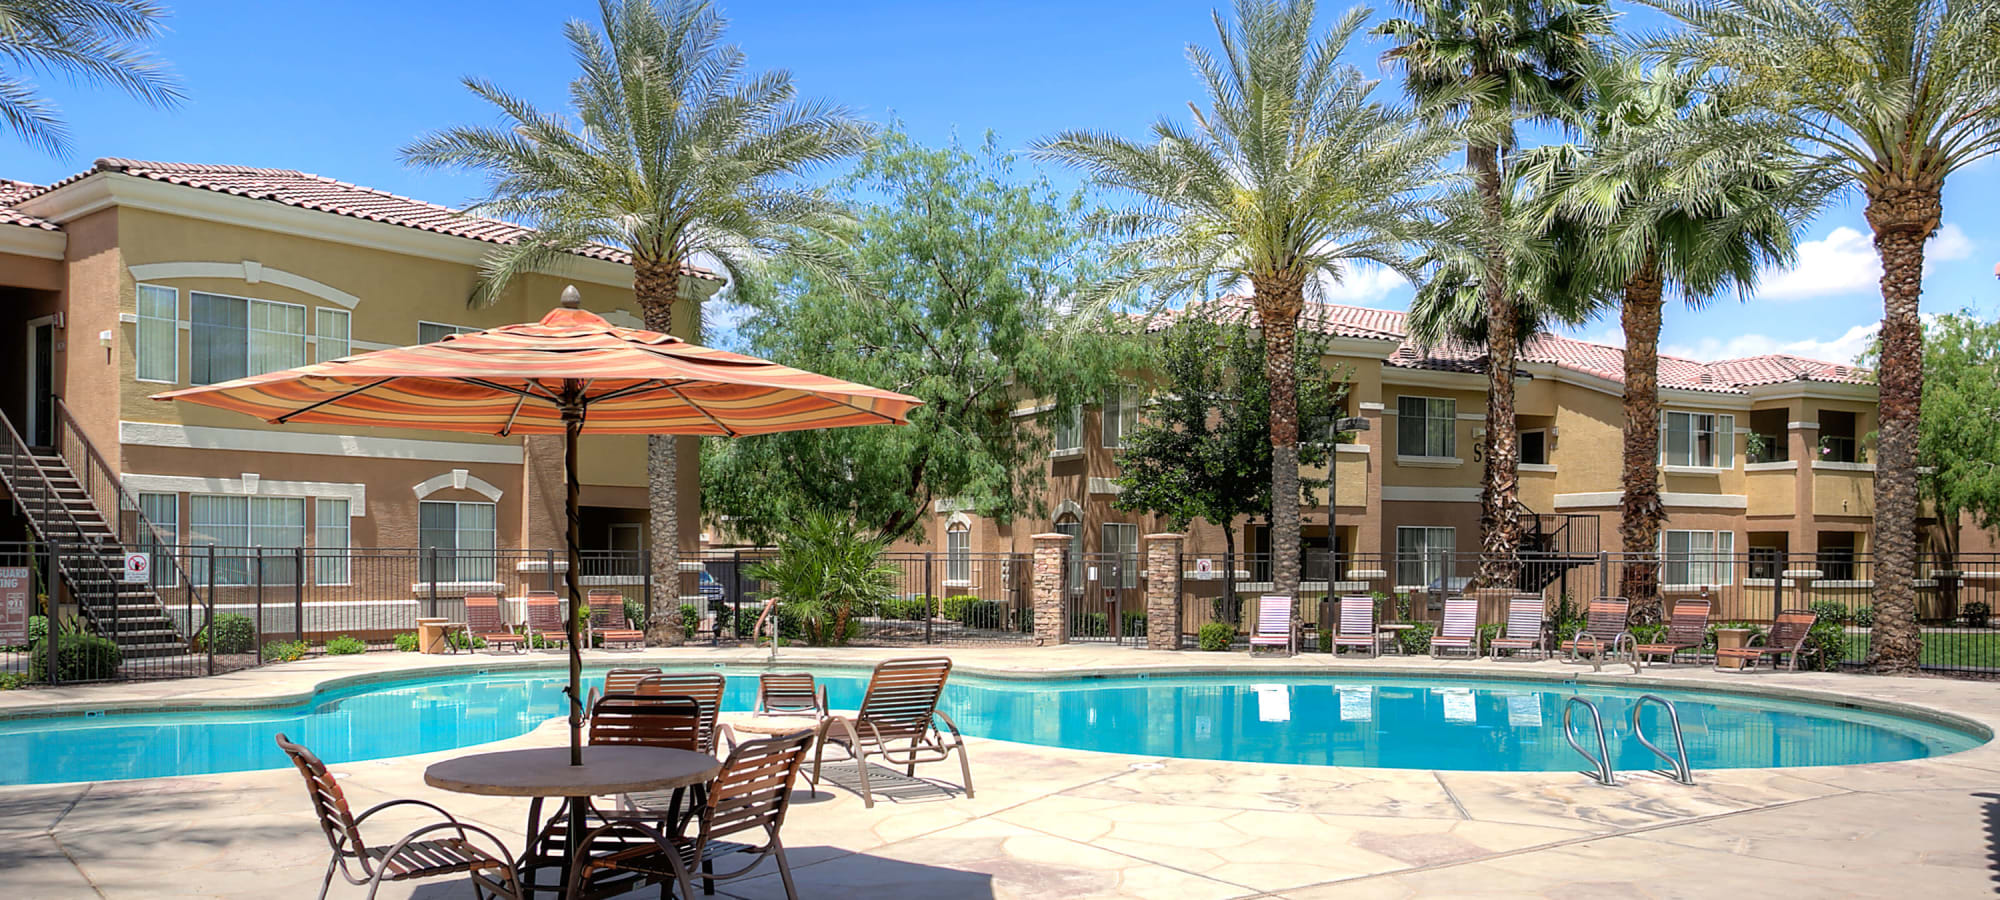 Resort style swimming pool on a beautiful day at Remington Ranch in Litchfield Park, Arizona